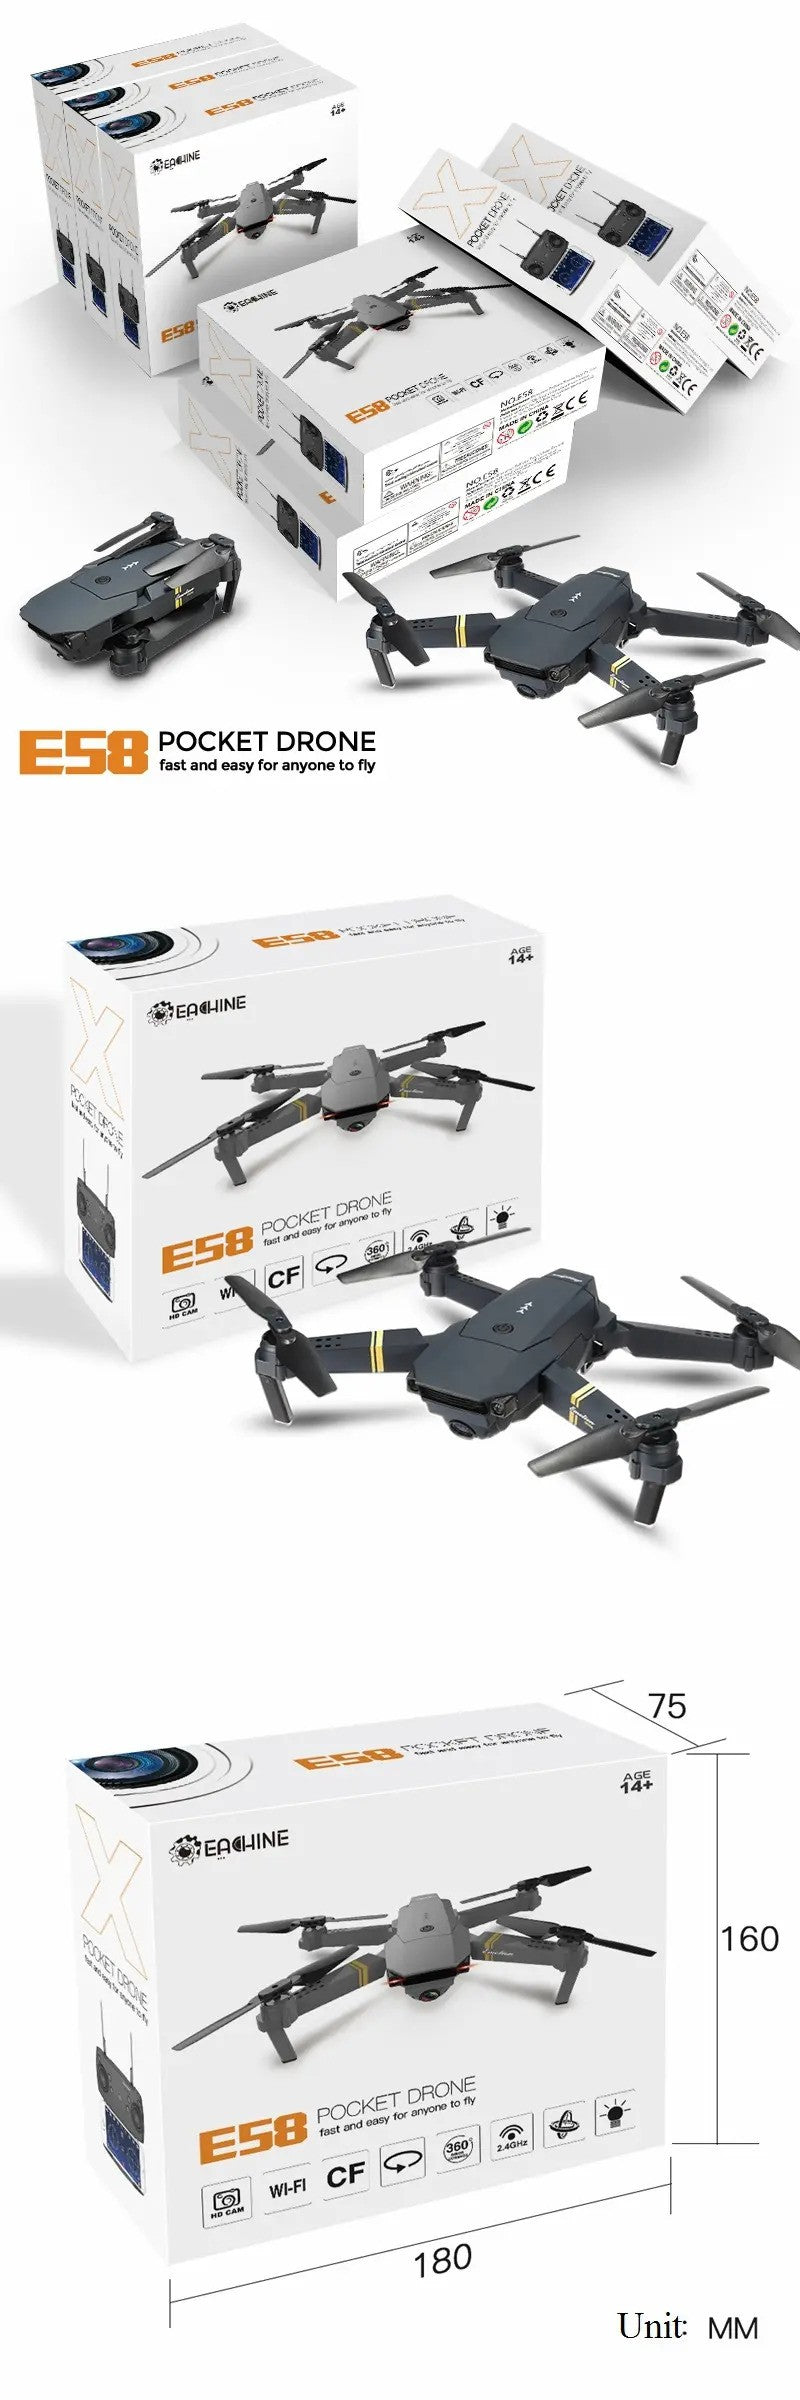 E50  POCKET DRONE fast and easy for anyone to fly